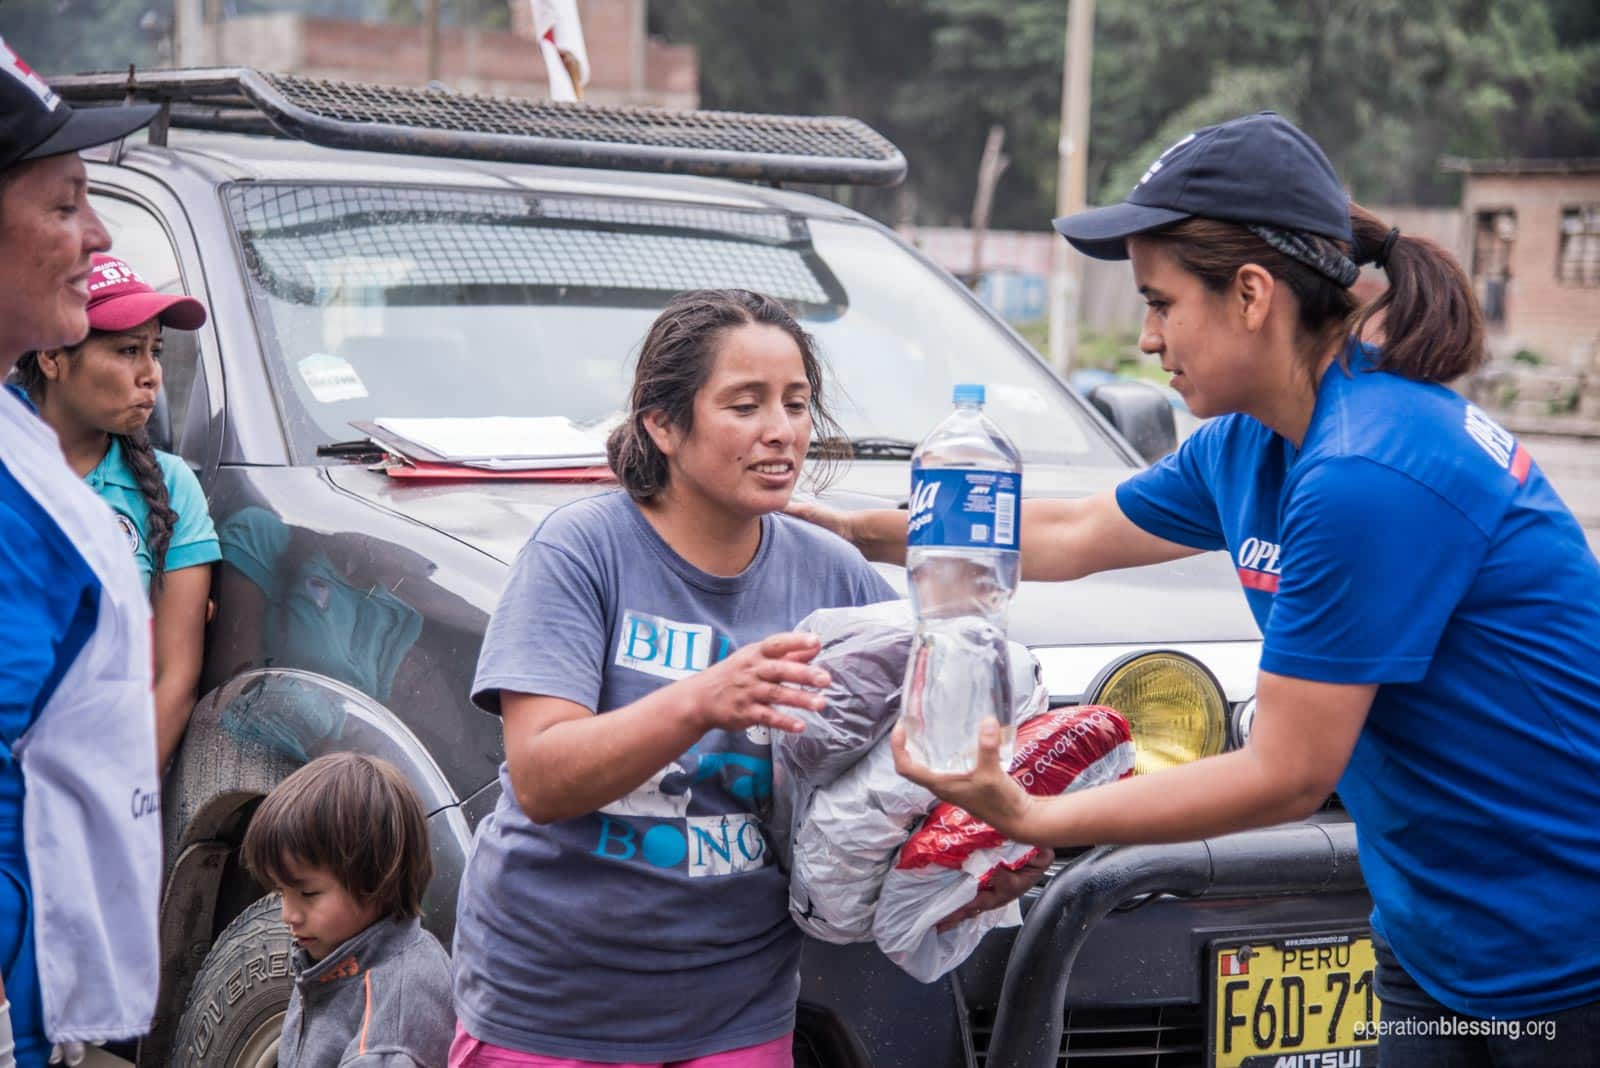 OB Peru staff and volunteers distribute much needed relief to victims.